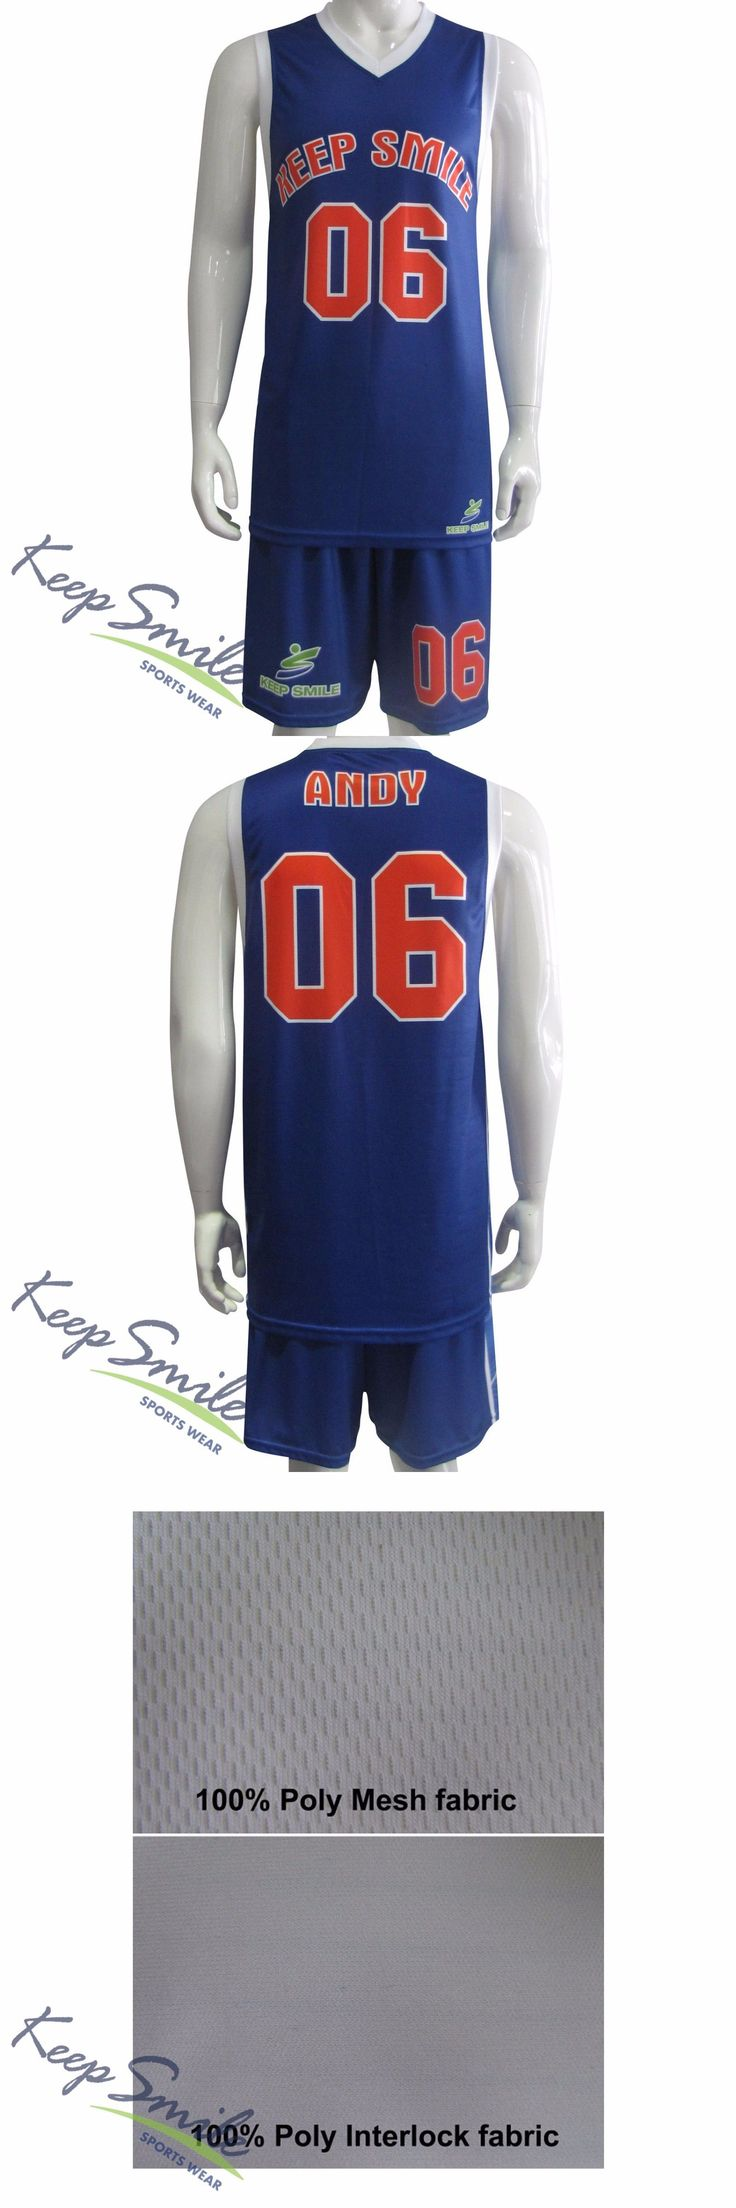 Women 158966: 12 Set Custom Sublimated Adult Women S Basketball Team Uniform Jersey And Short -> BUY IT NOW ONLY: $352.99 on eBay!